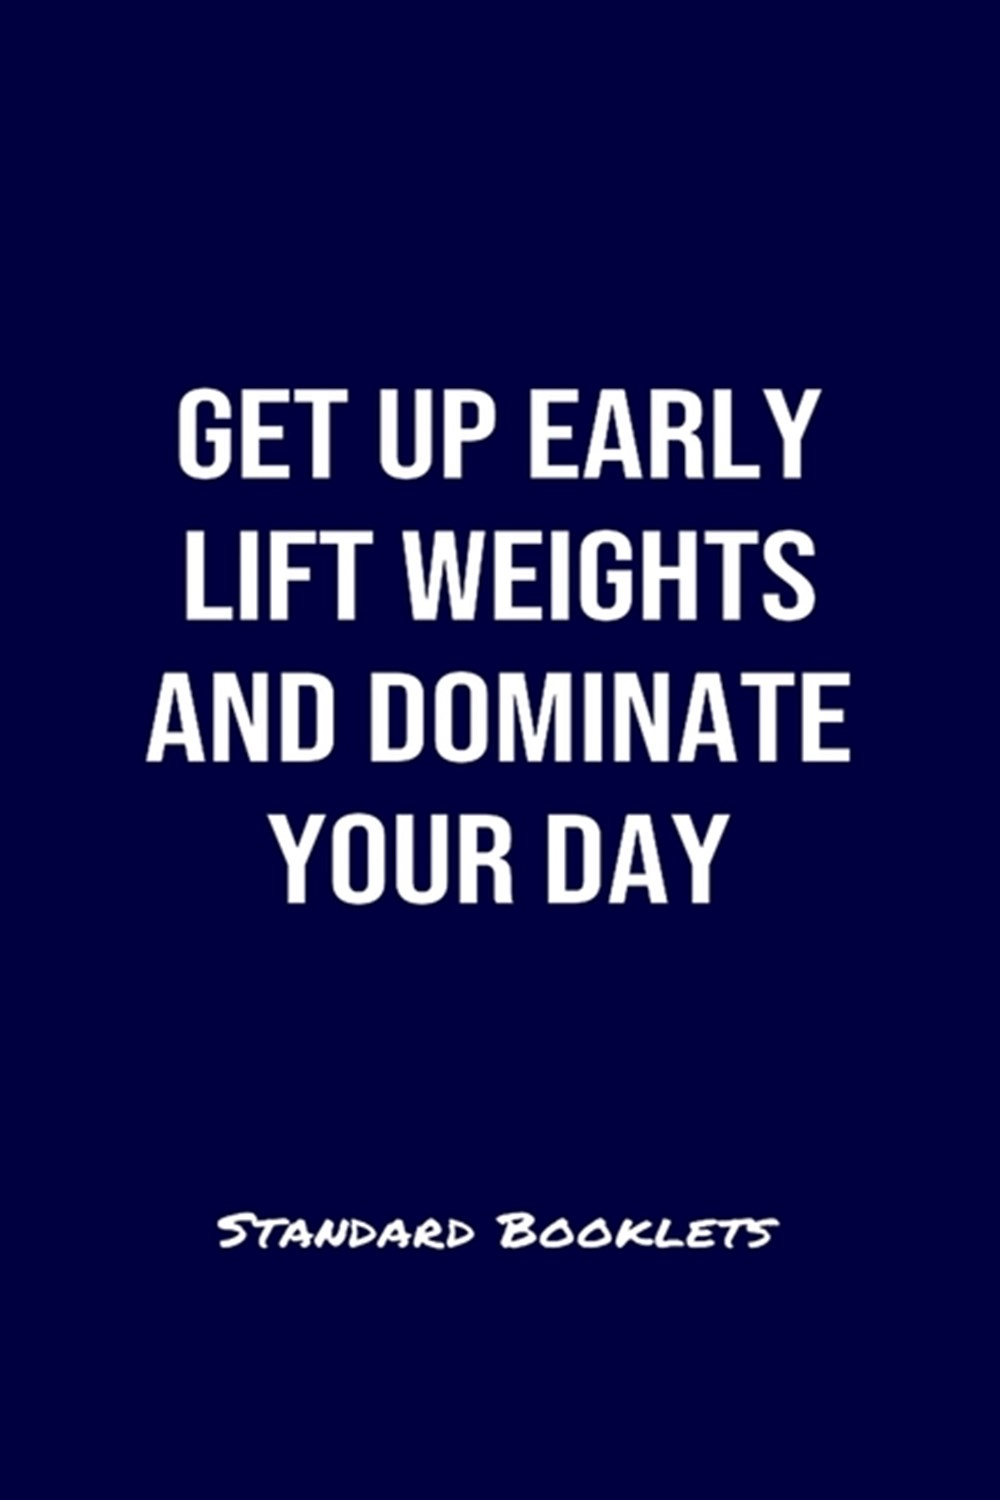 Get Up Early Lift Weights And Dominate Your Day Standard Booklets A softcover fitness tracker to rec